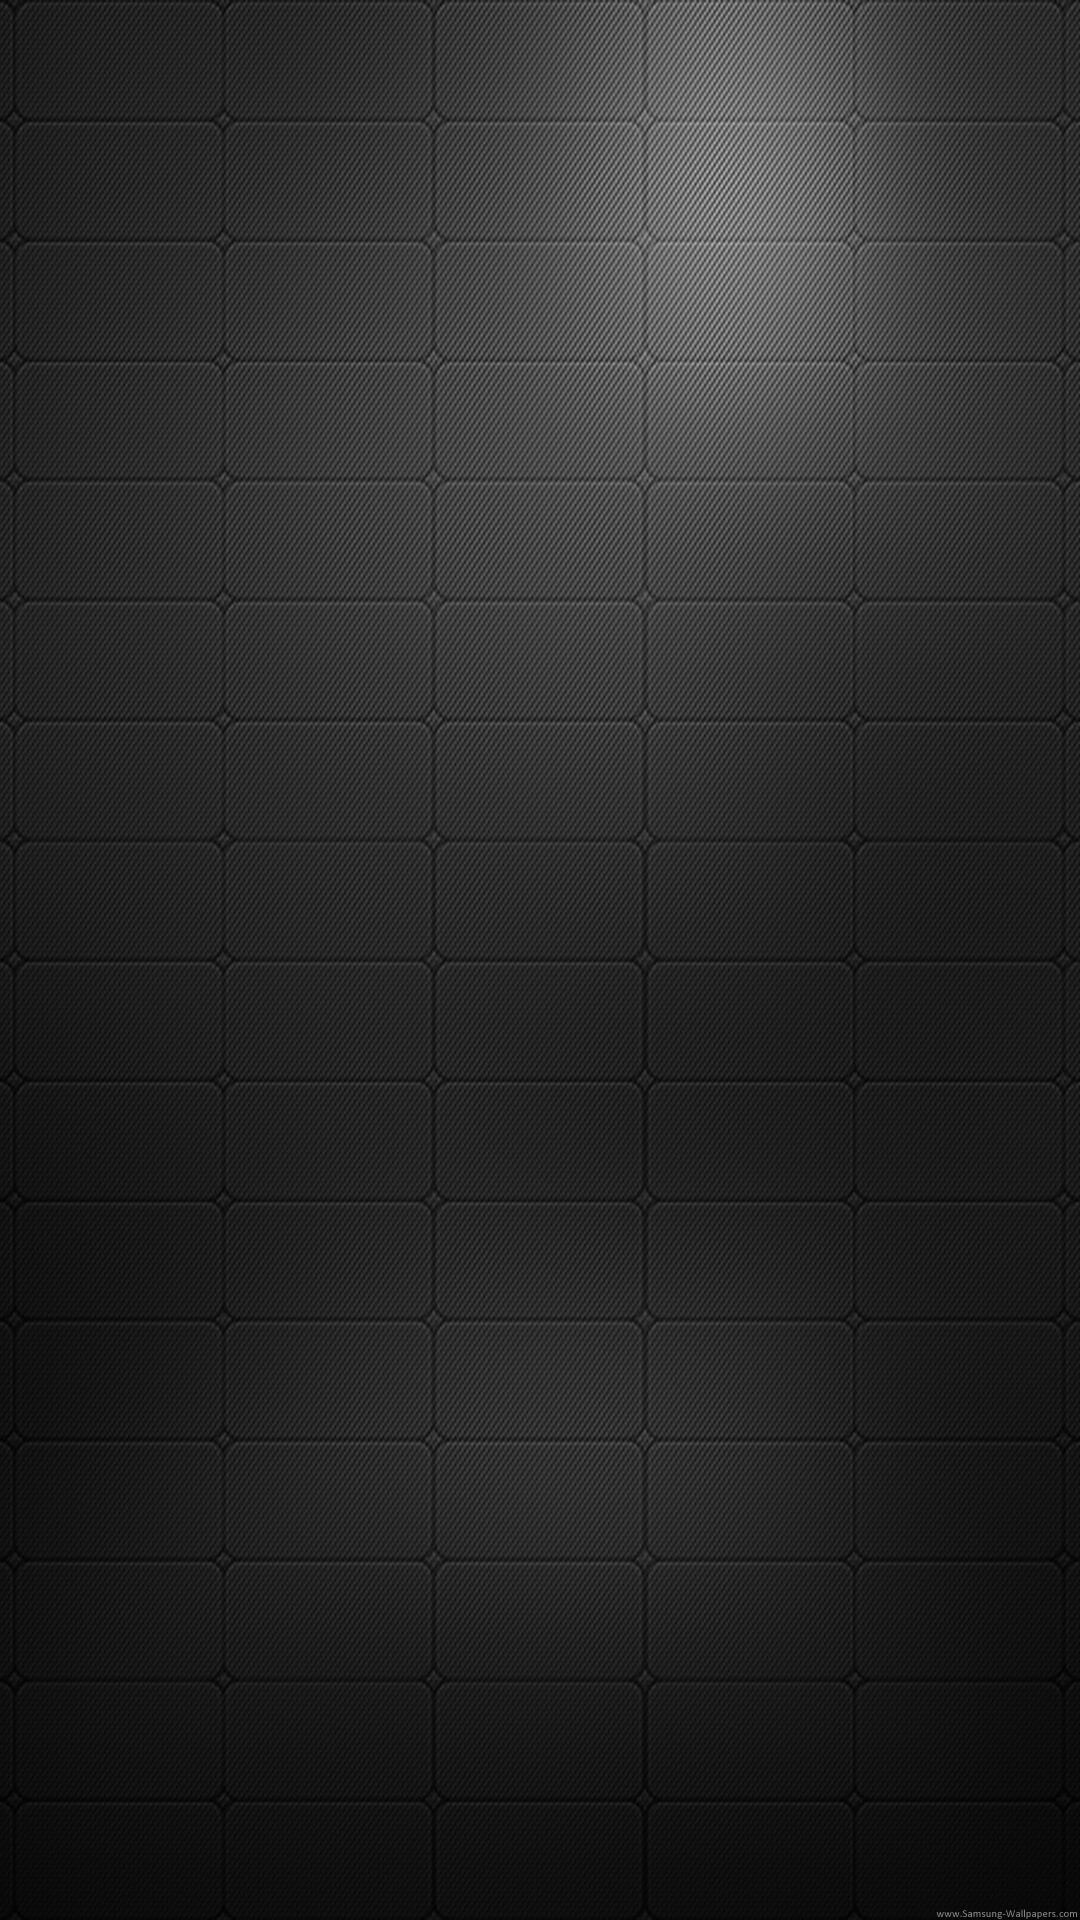 1080x1920 black screen wallpaper for android